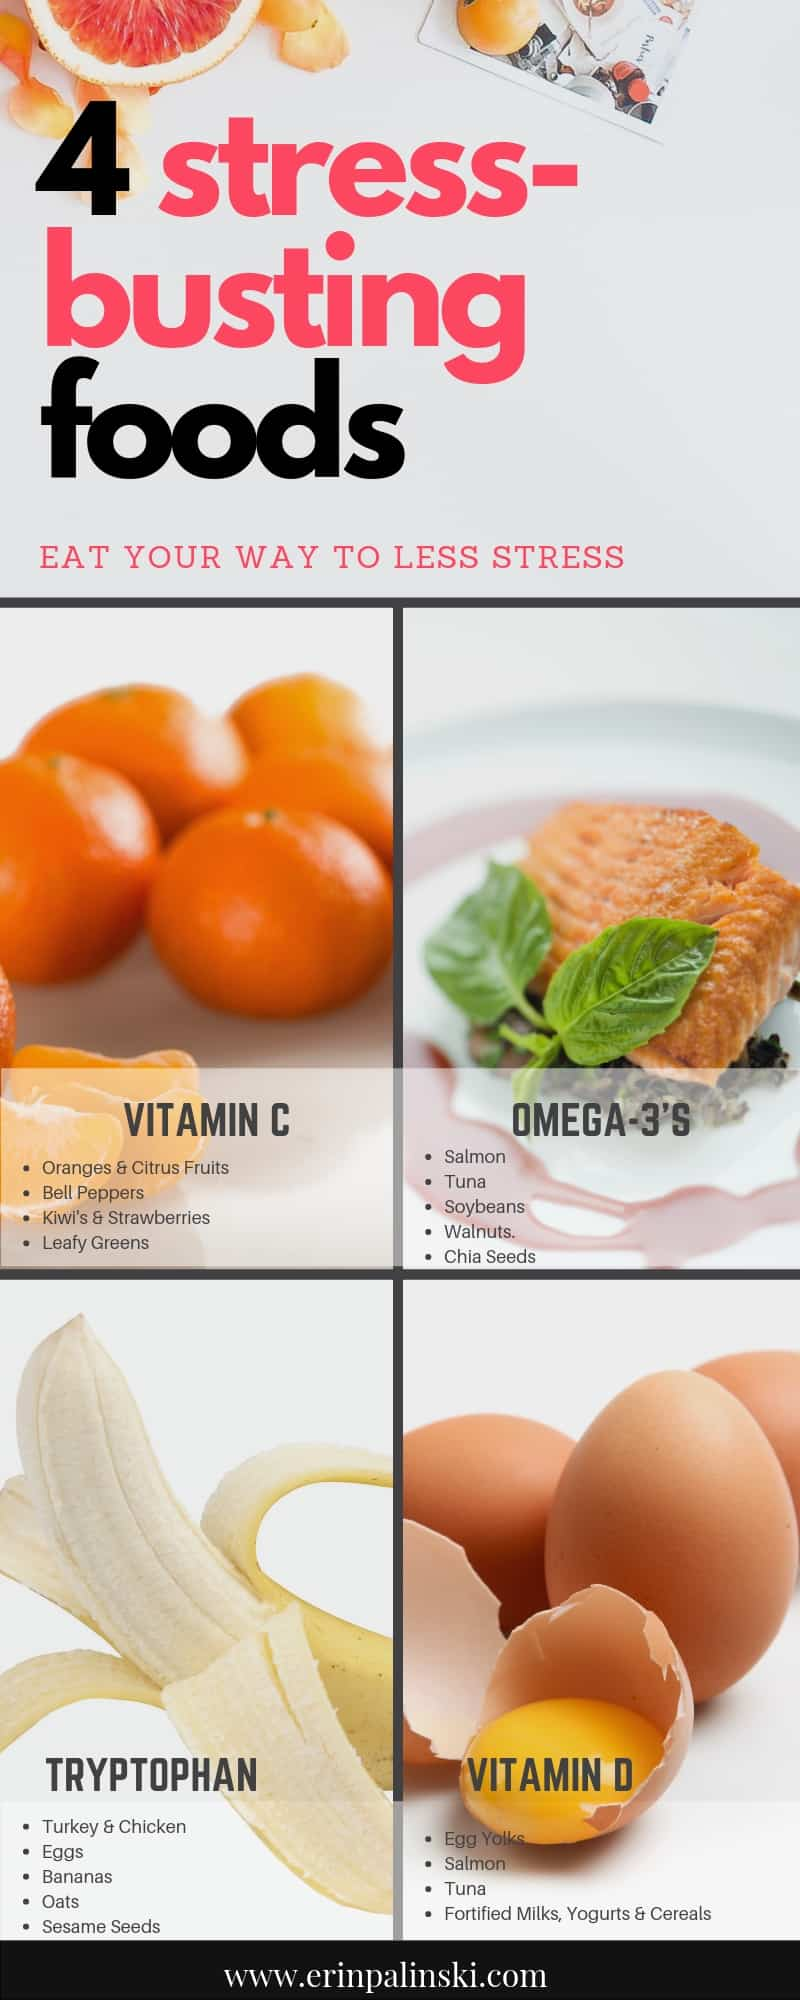 4 Stress-Busting Foods Vitamin C Omega 3's Tryptophan Vitamin D